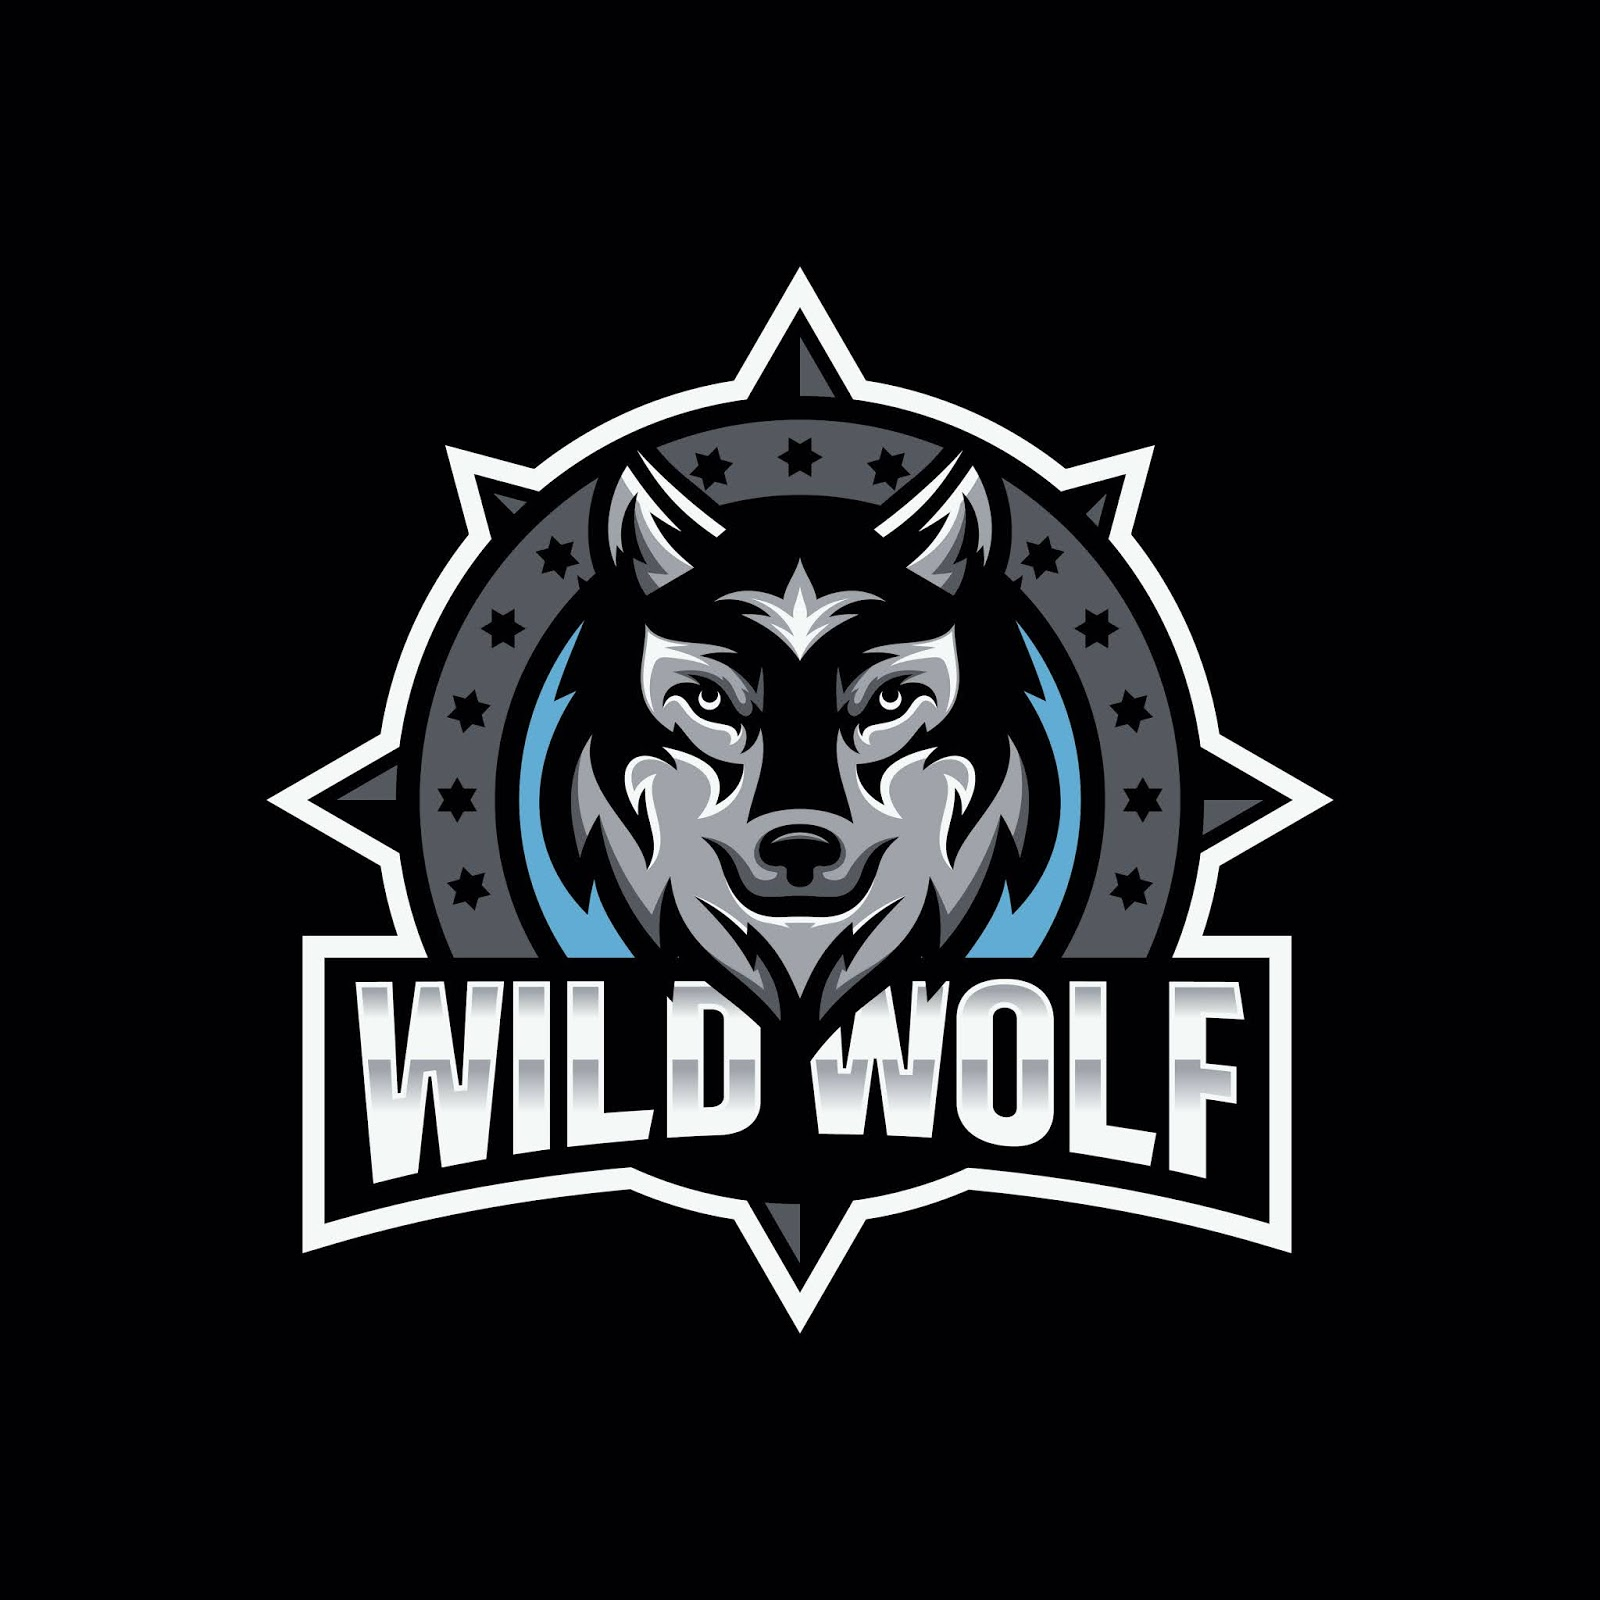 Wild Wolf Esport Mascot Logo Design Free Download Vector CDR, AI, EPS and PNG Formats